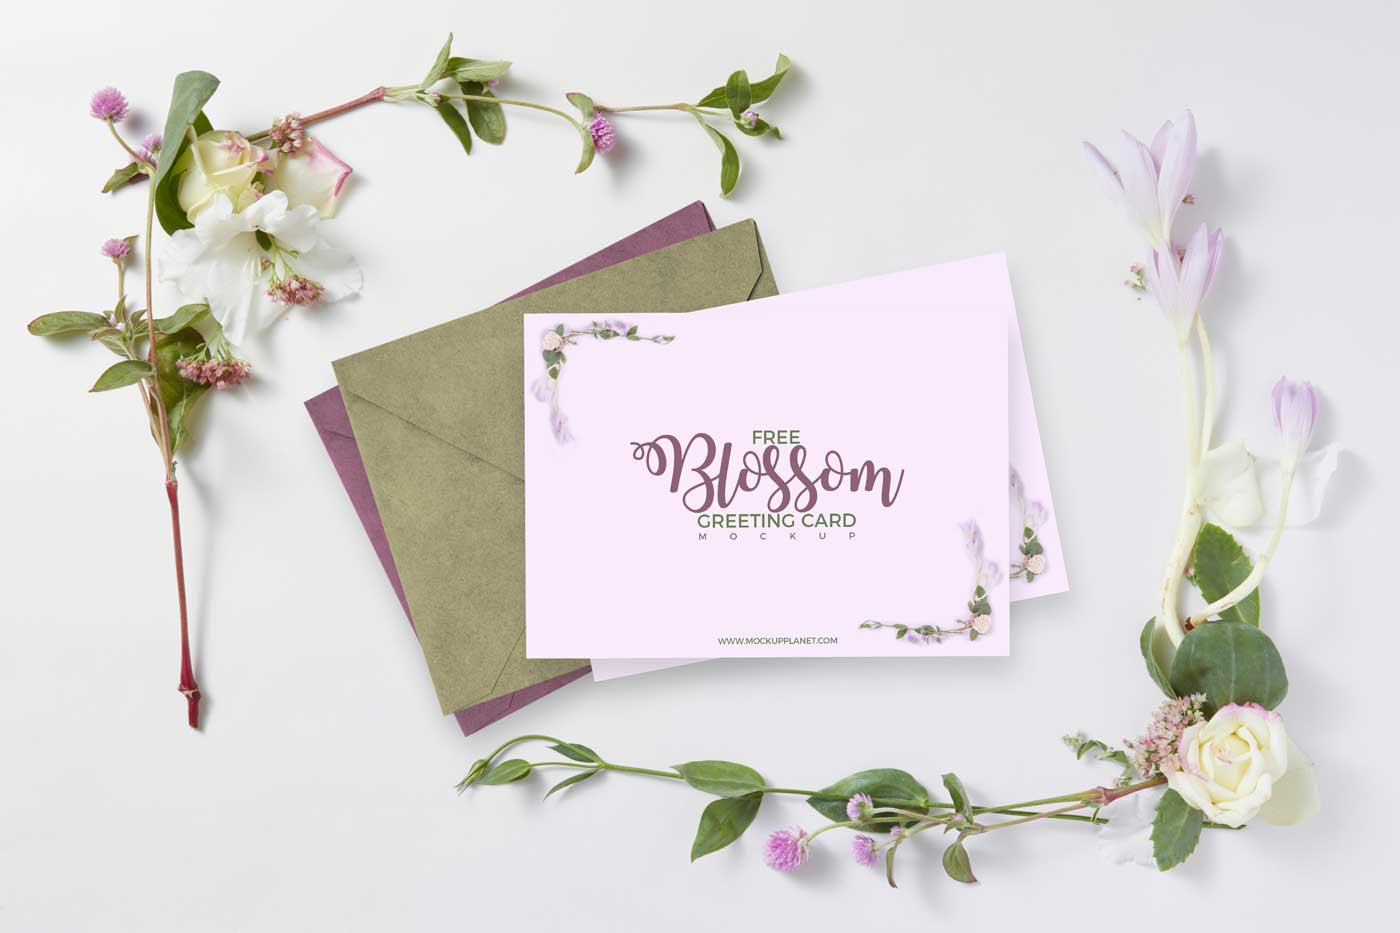 Blossom Greeting Card Free Mockup Cover